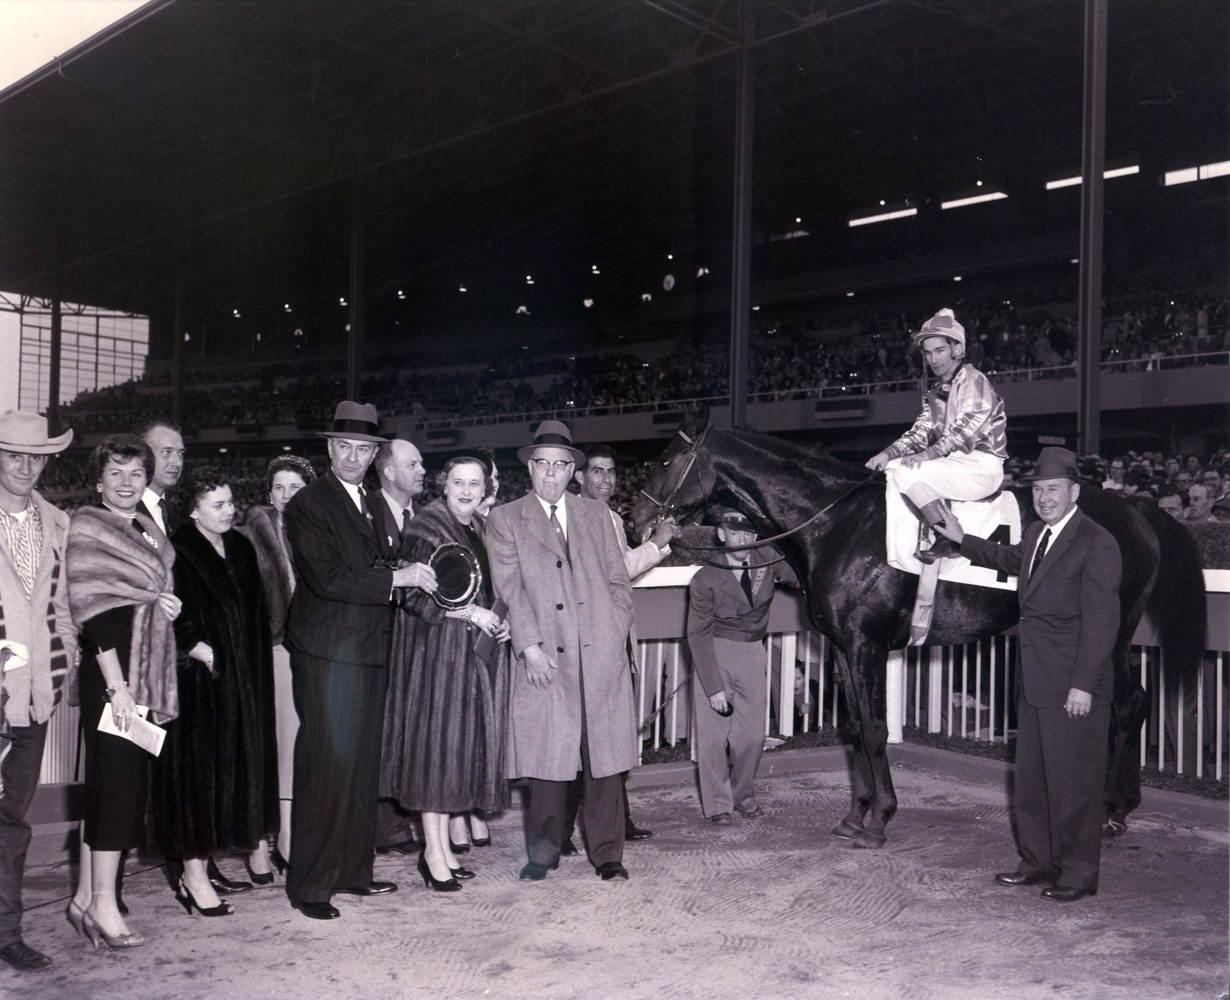 The winning connections of Round Table (Bill Shoemaker up) in the winner's circle at Santa Anita Park (Santa Anita Photo/Museum Collection)